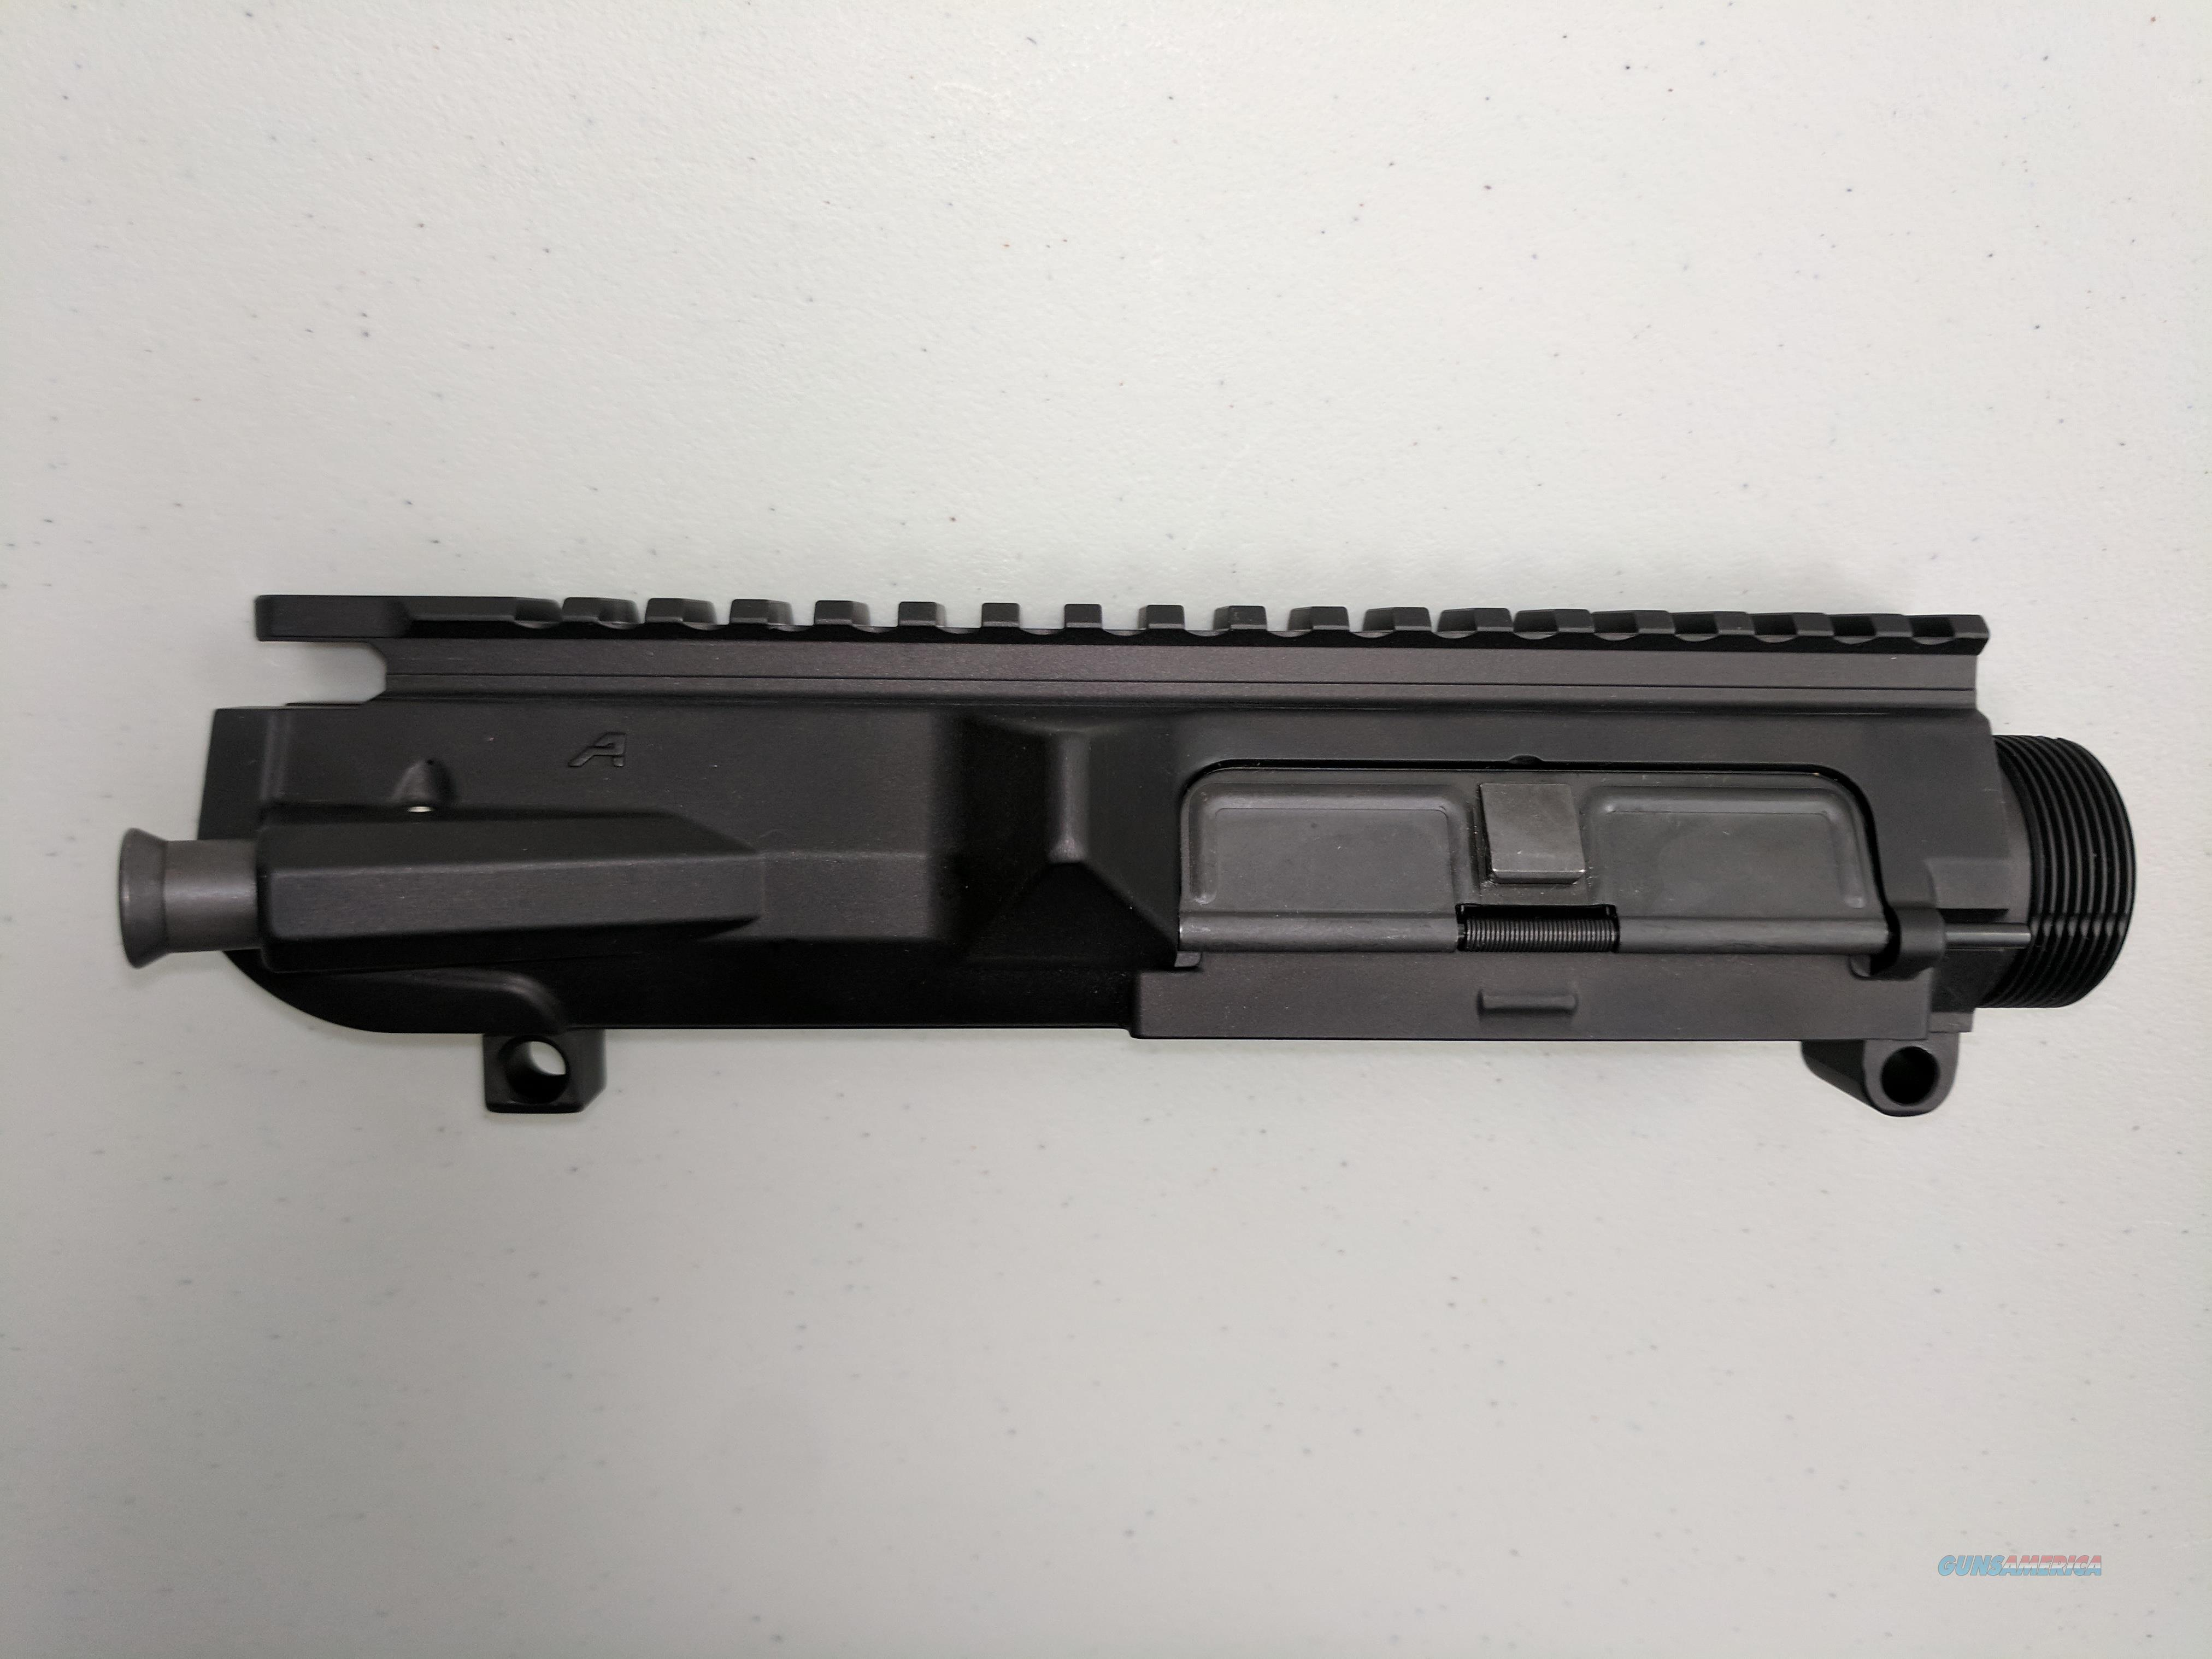 Aero Precision M5 .308 Assembled Upper Receiver  Non-Guns > Gun Parts > M16-AR15 > Upper Only